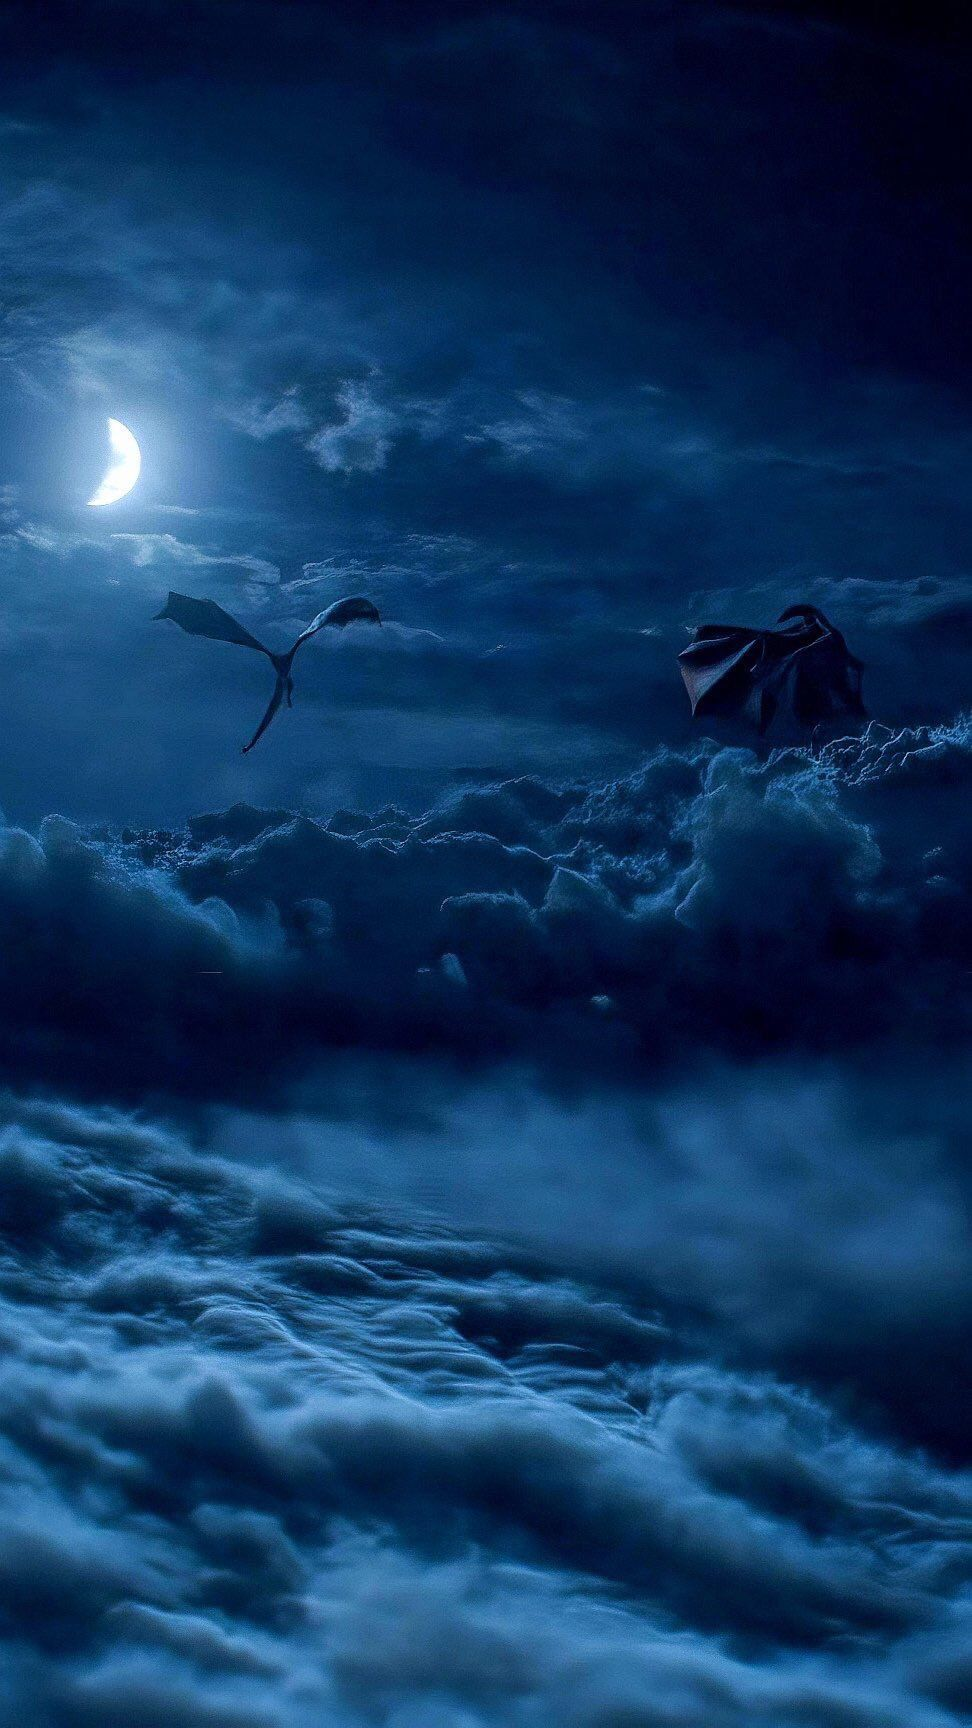 Dragons In The Moonlight Episode 3 Season 8 Game Of Thrones Drogon Game Of Thrones Game Of Thrones Poster Game Of Thrones Art